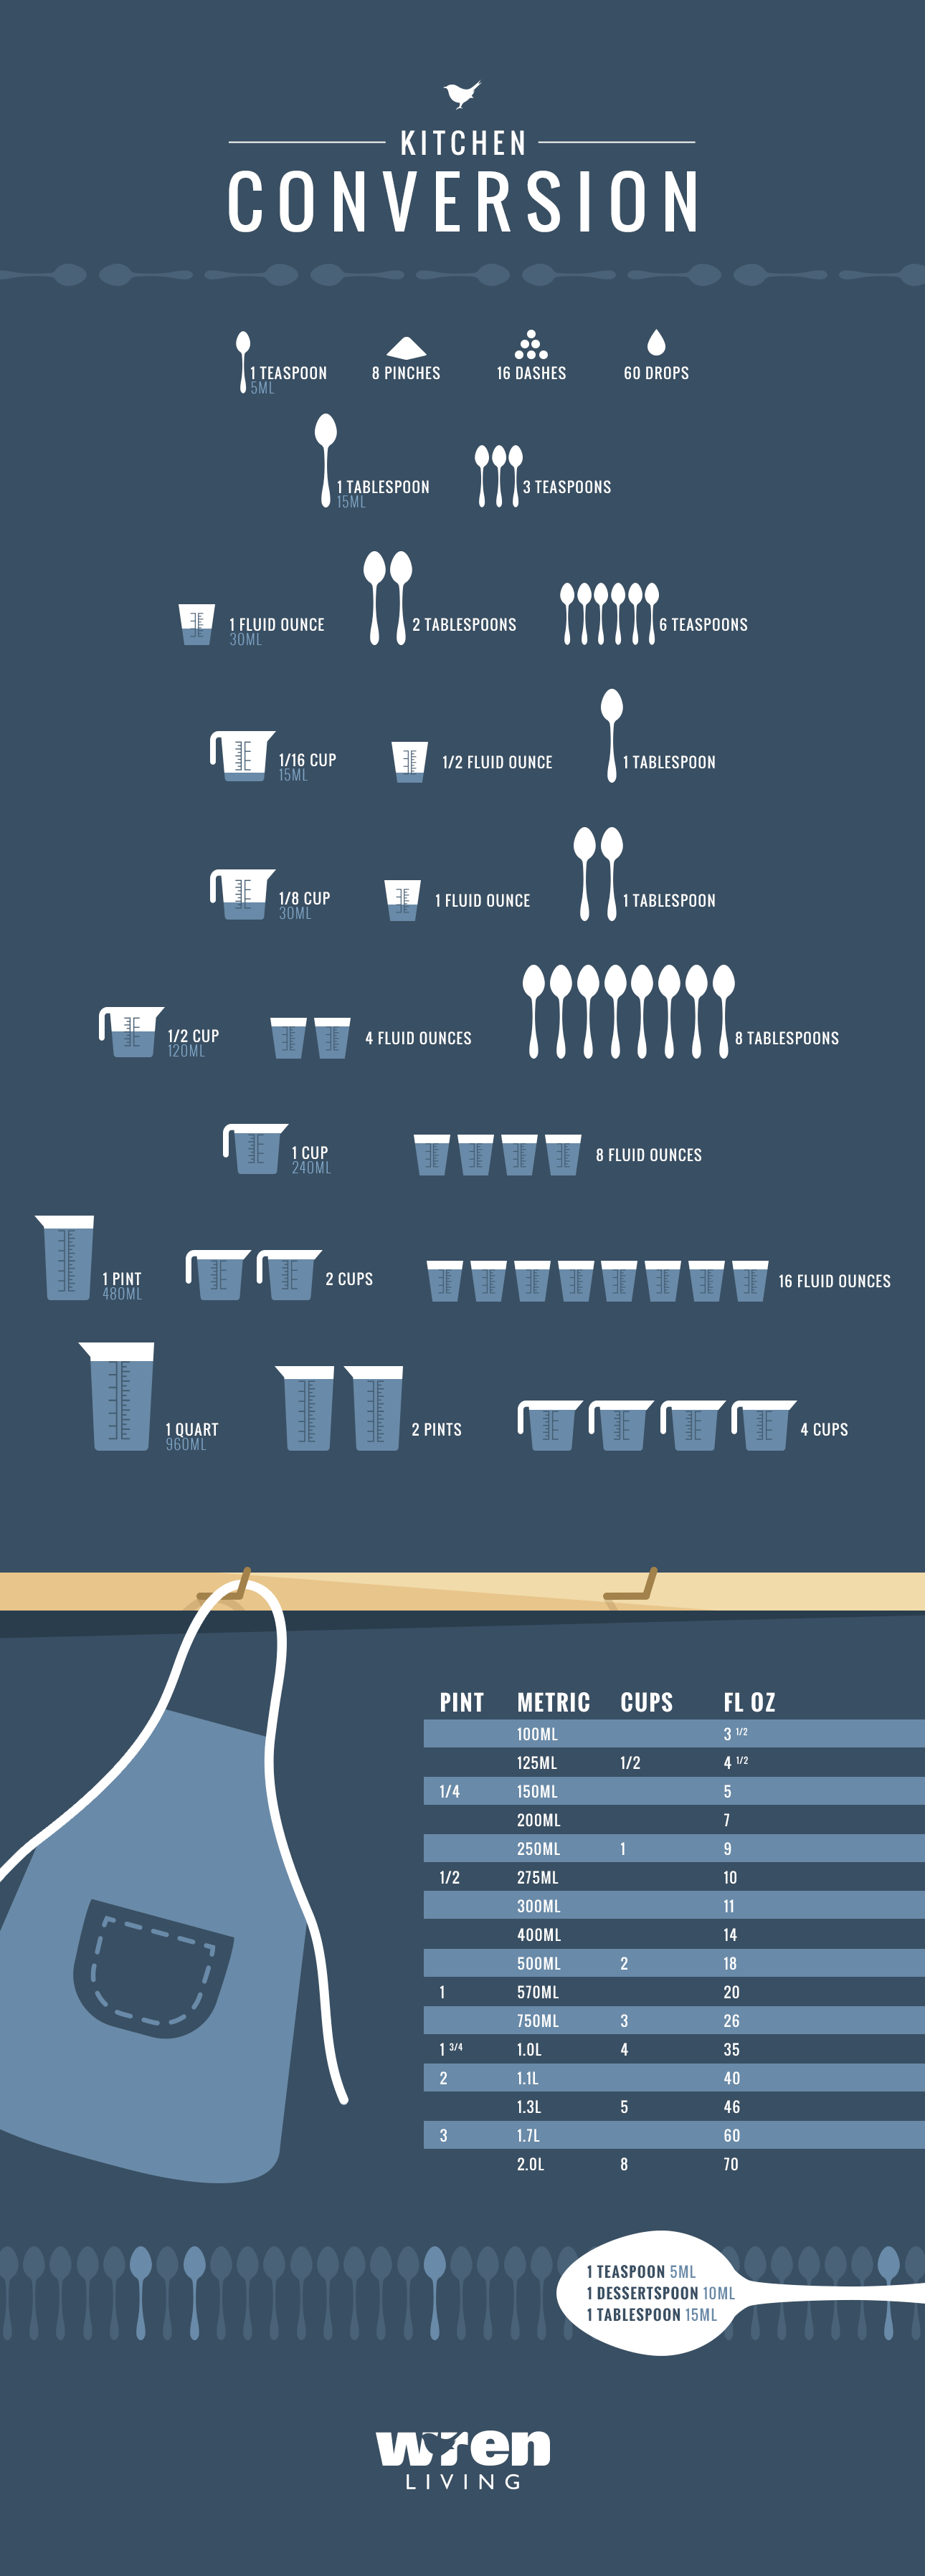 Kitchen Conversions Infographic